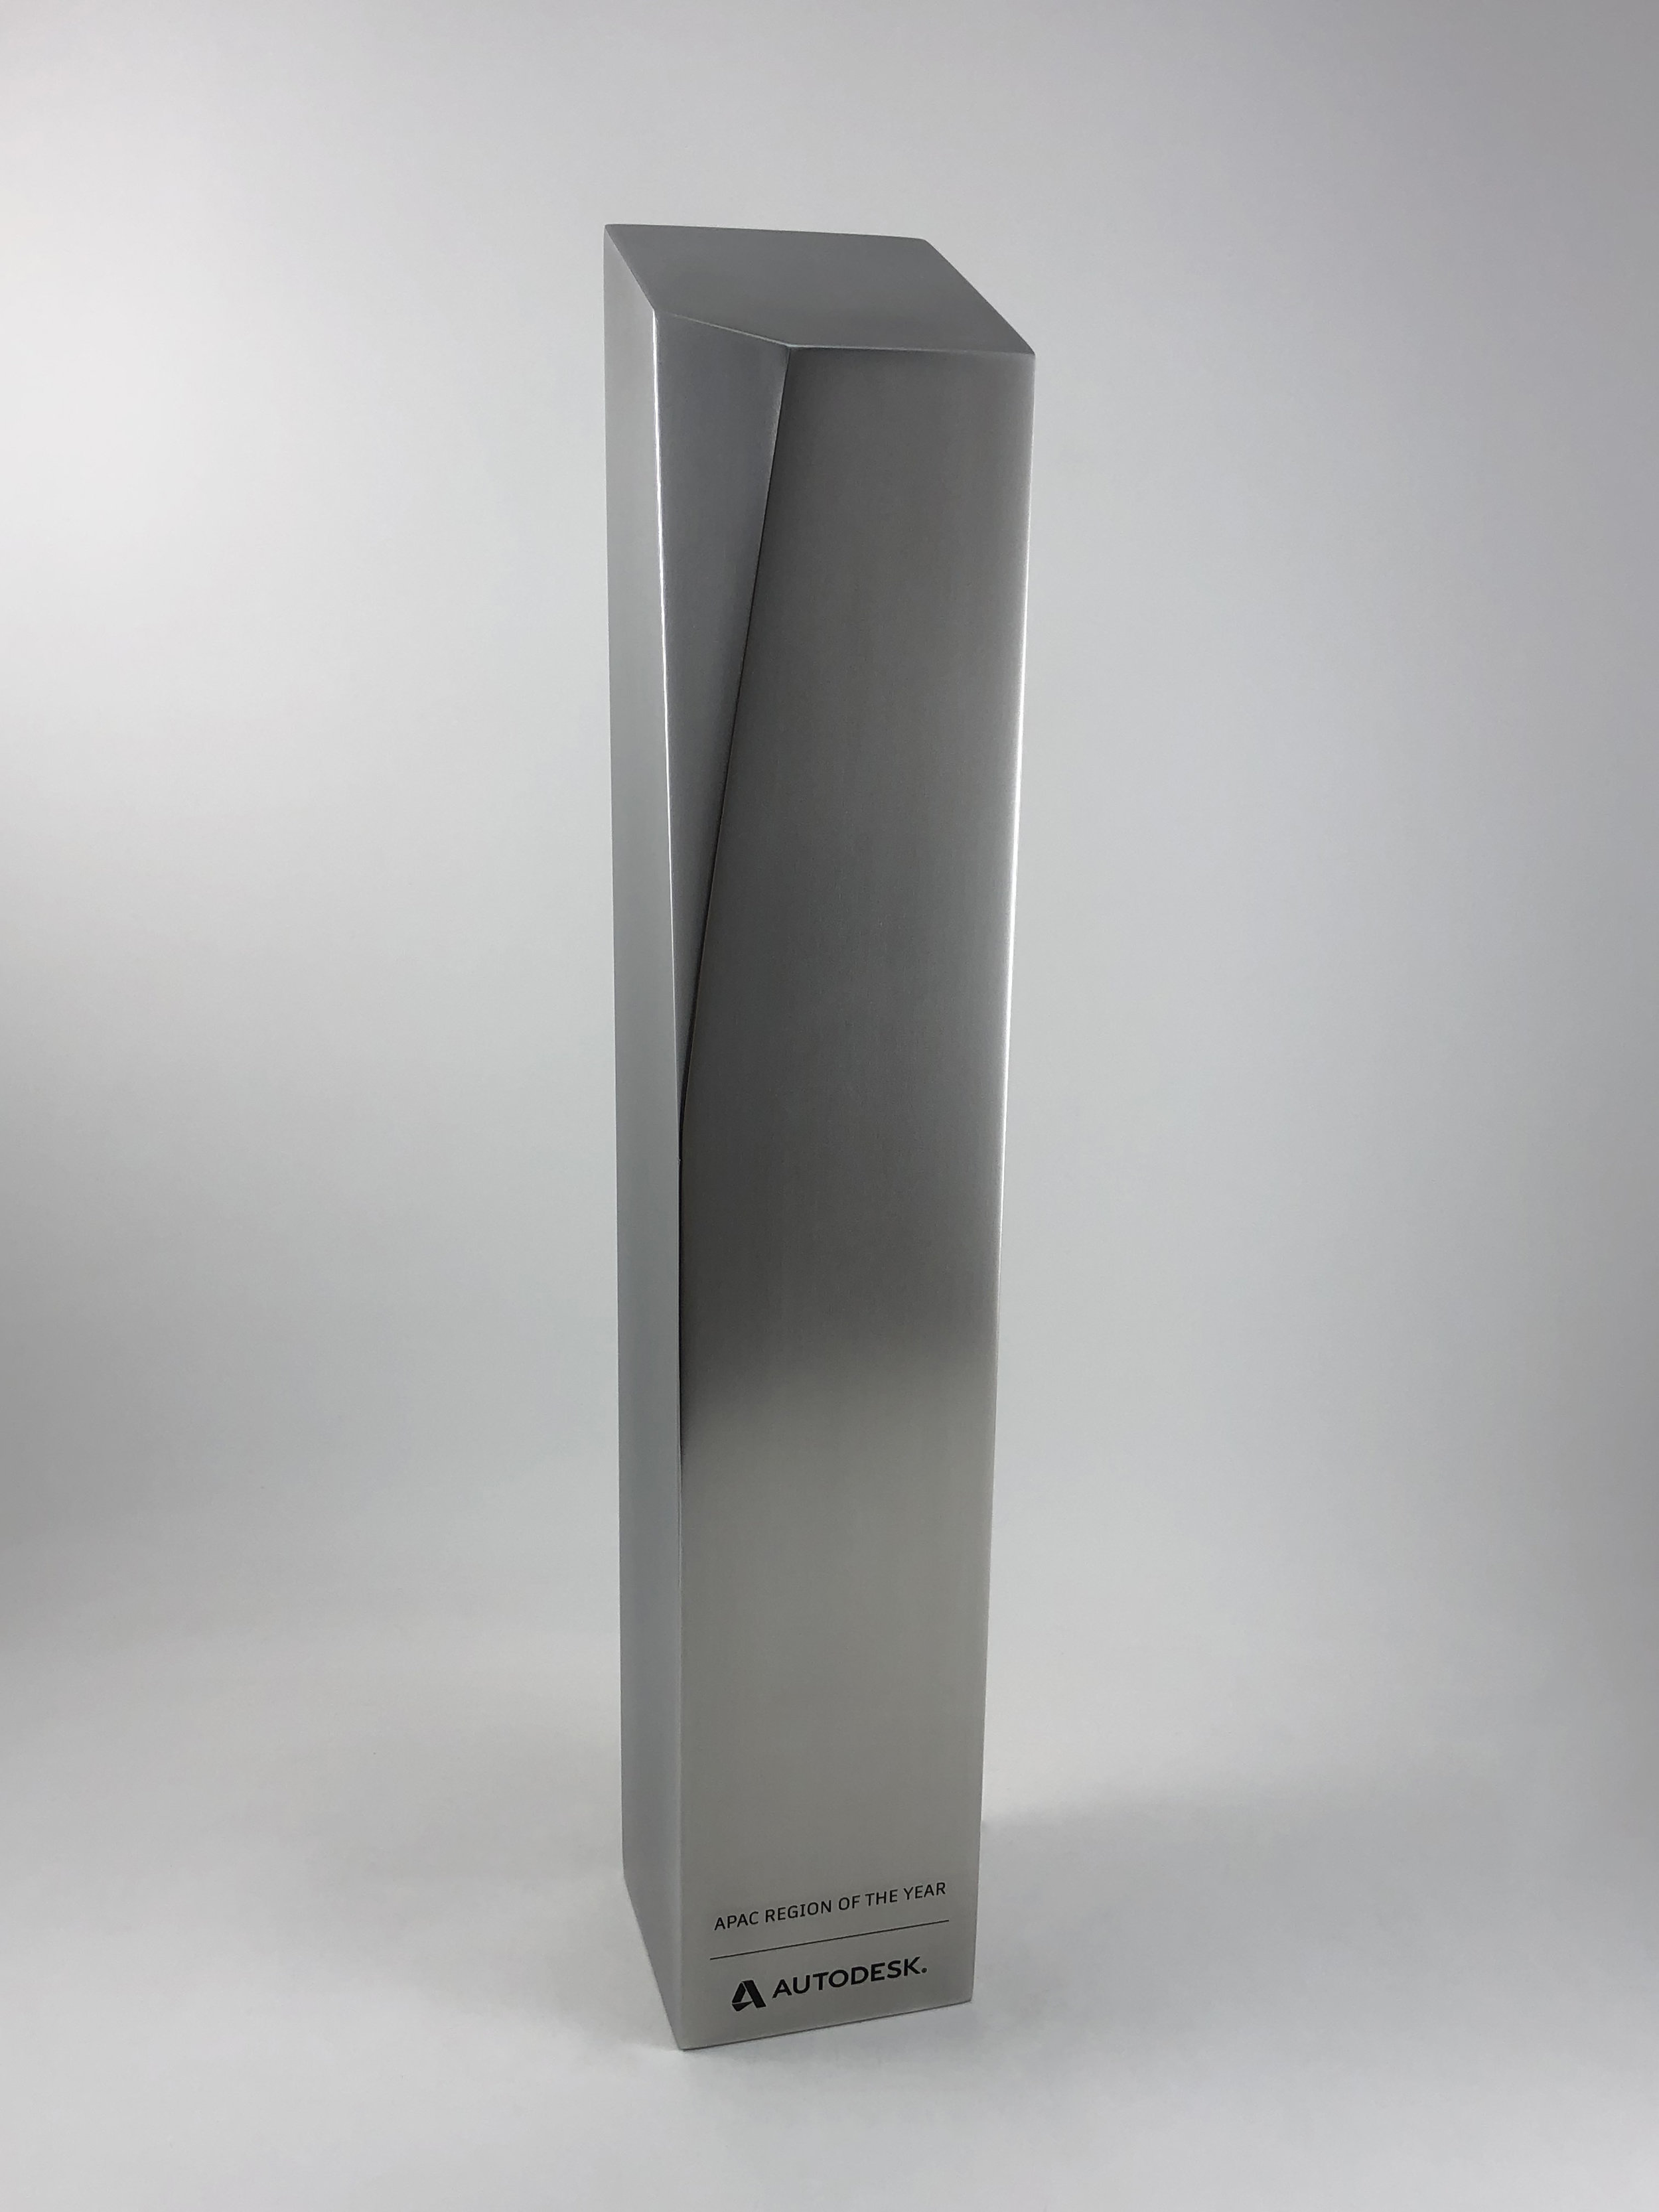 autodesk-apac-excellence-awards-acrylic-metal-graphic-art-print-trophy-08.jpg